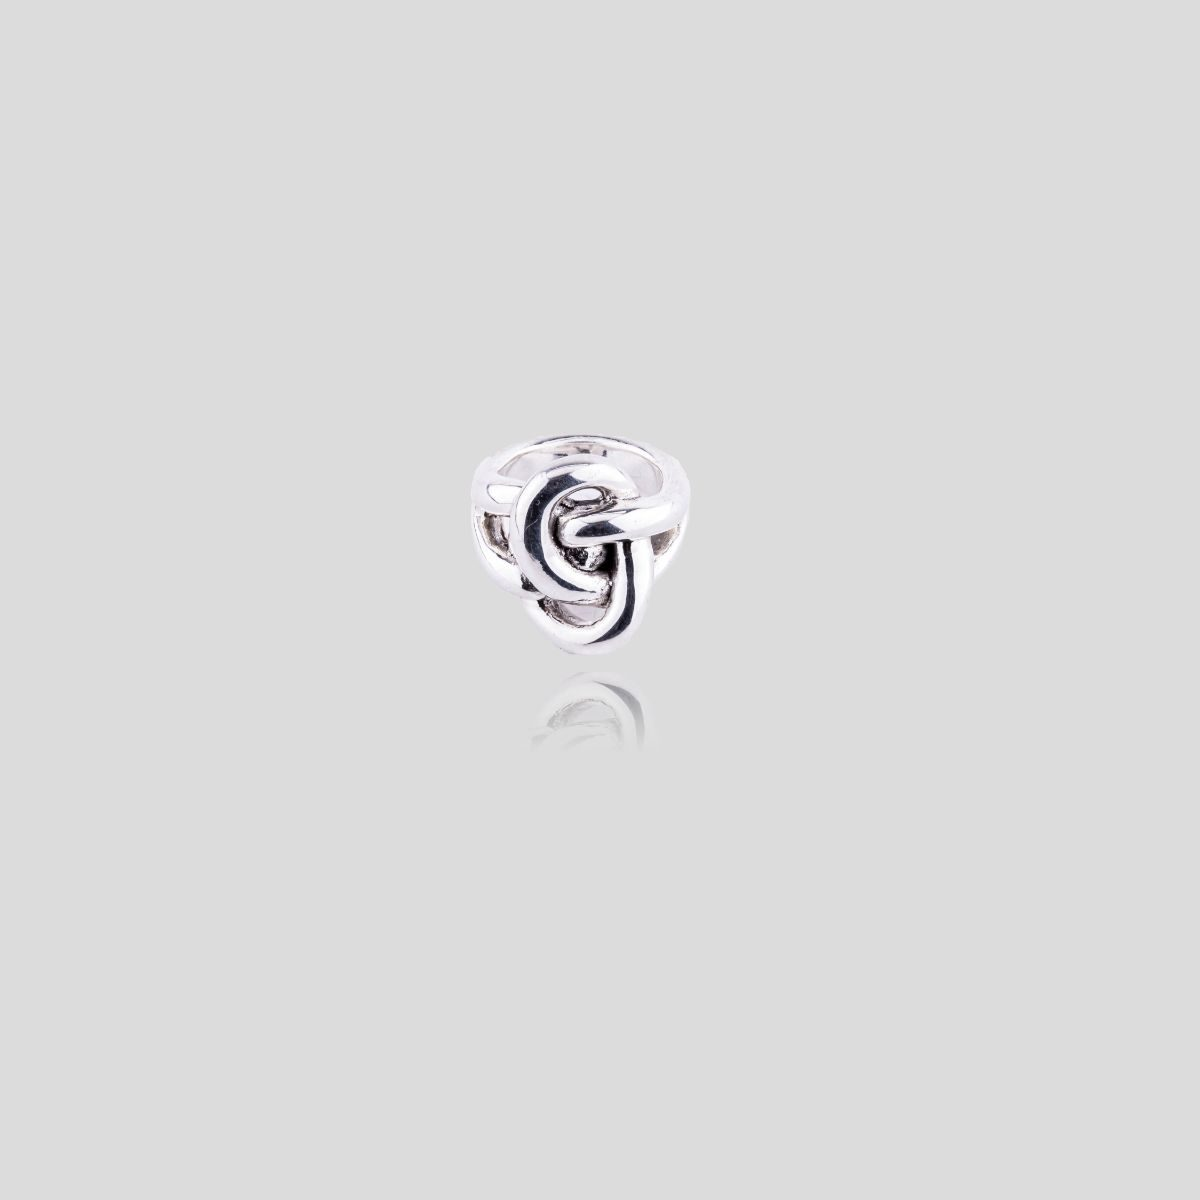 Escorpio sterling silver ring with ribbon or knot motif